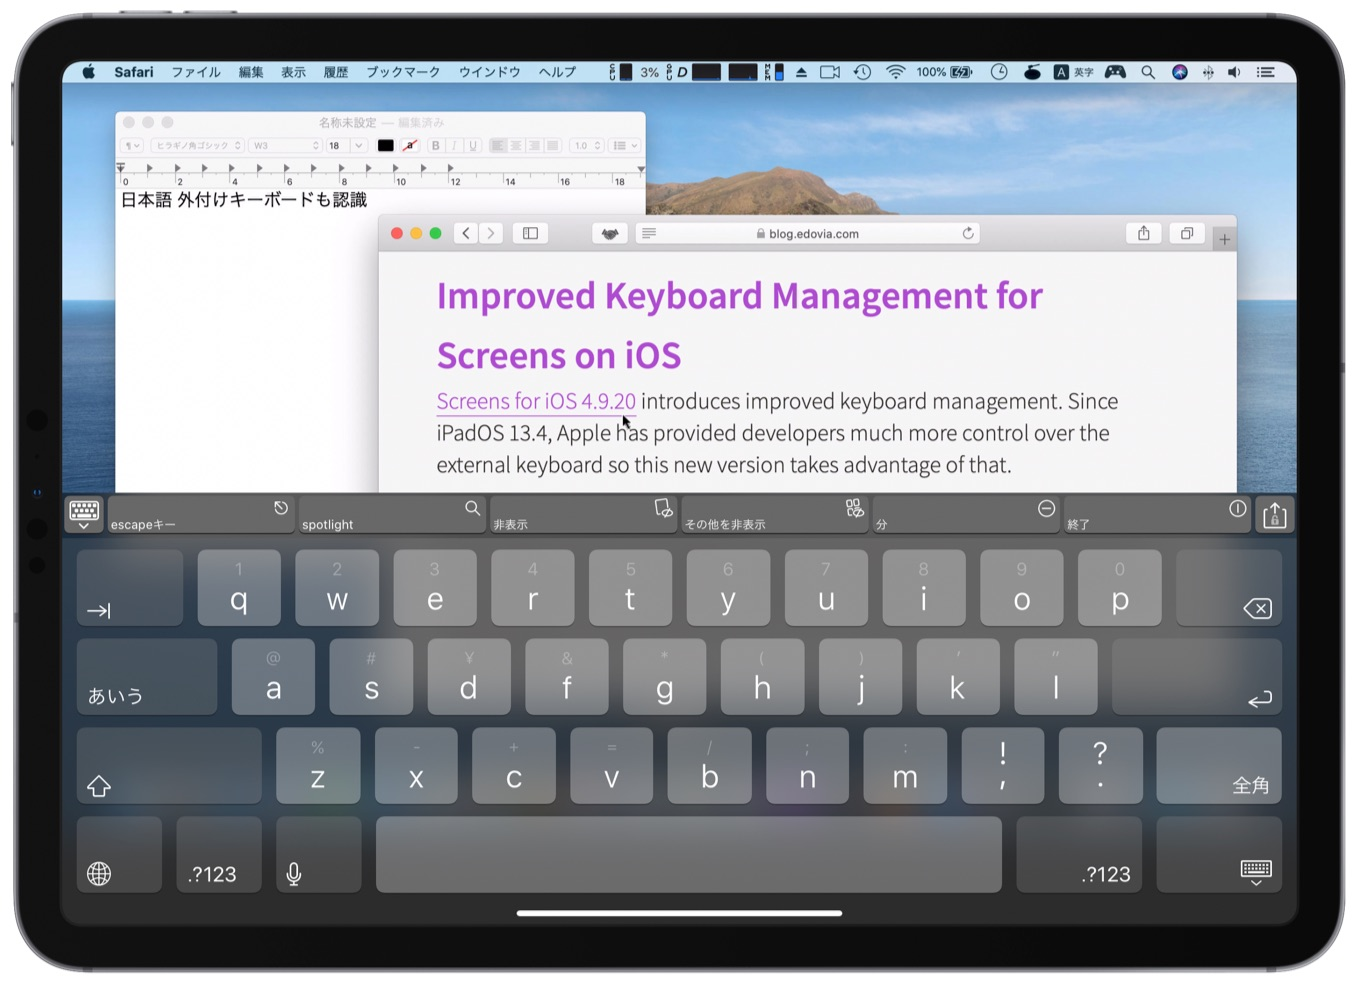 Screens for iOSの日本語キーボード